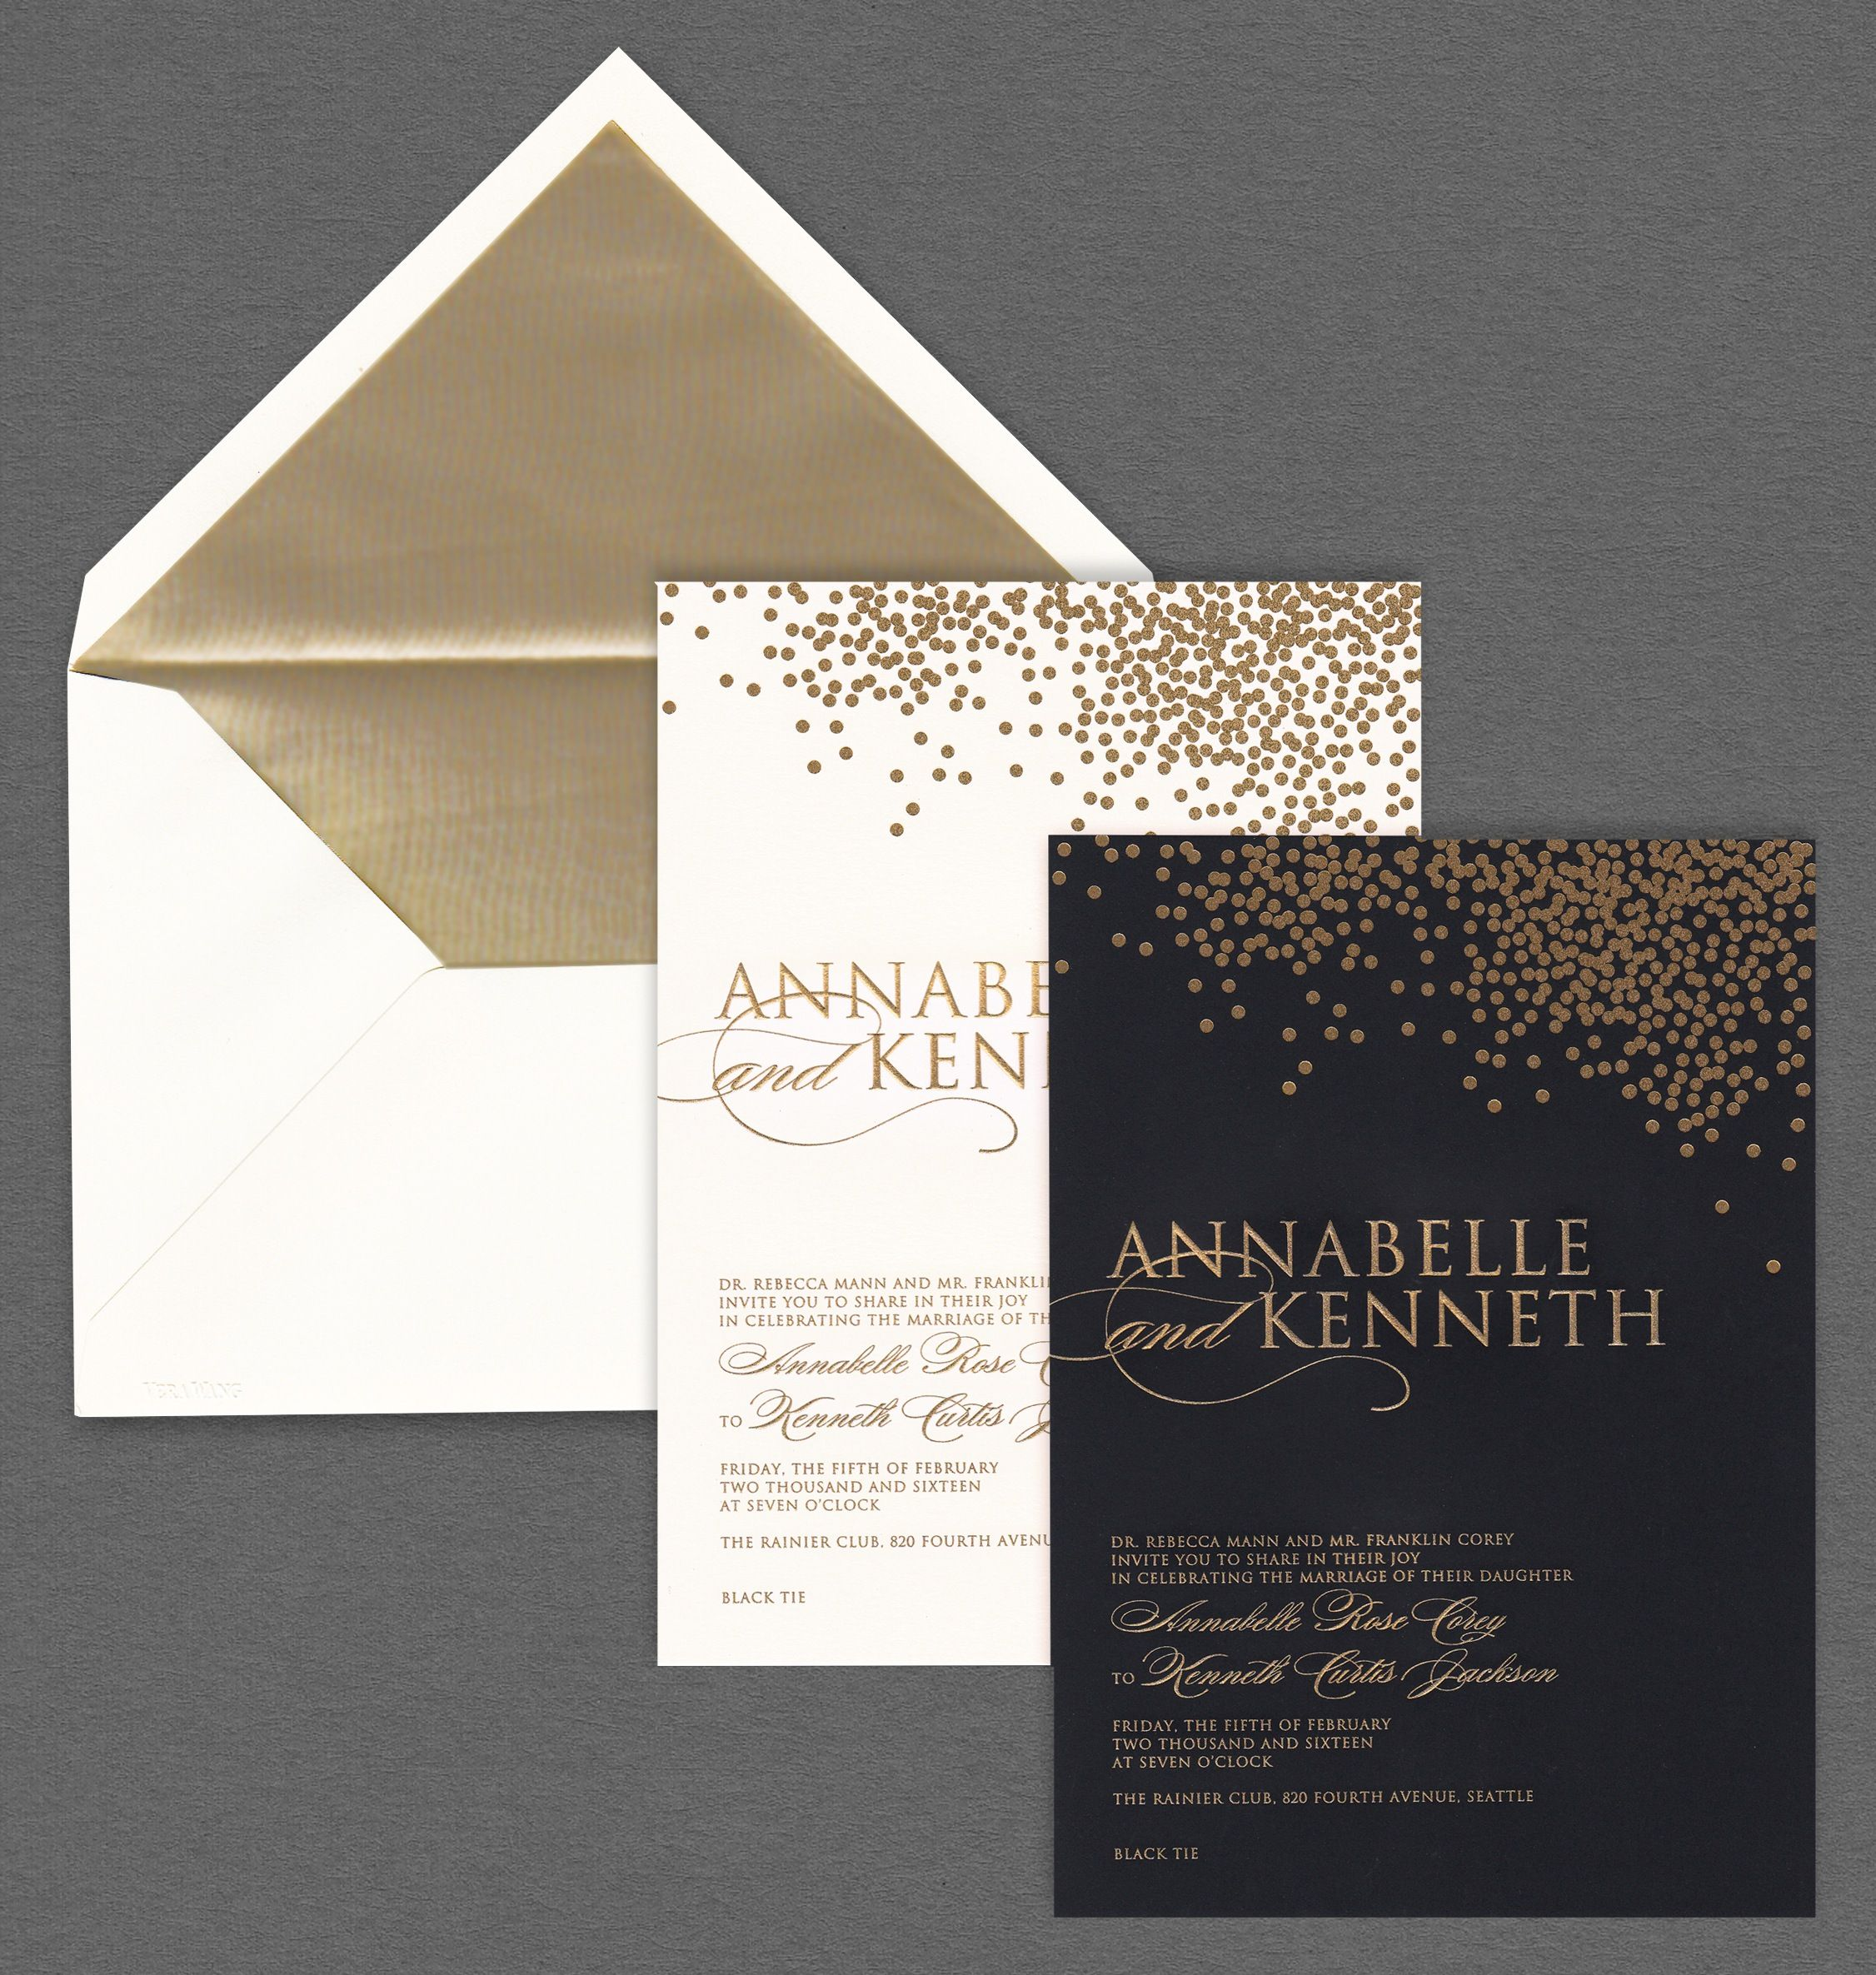 how to address couples on wedding invitations%0A Vera Wang oyster and black wedding invitations with gold confetti     love  the